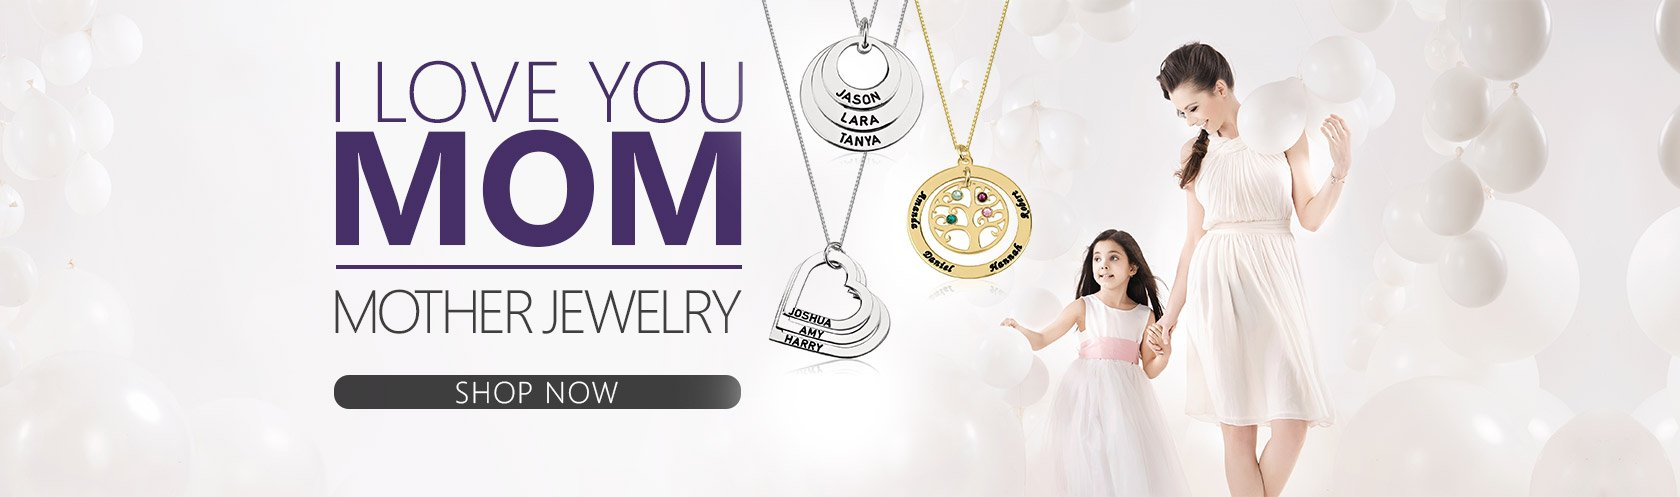 Mother Jewelry